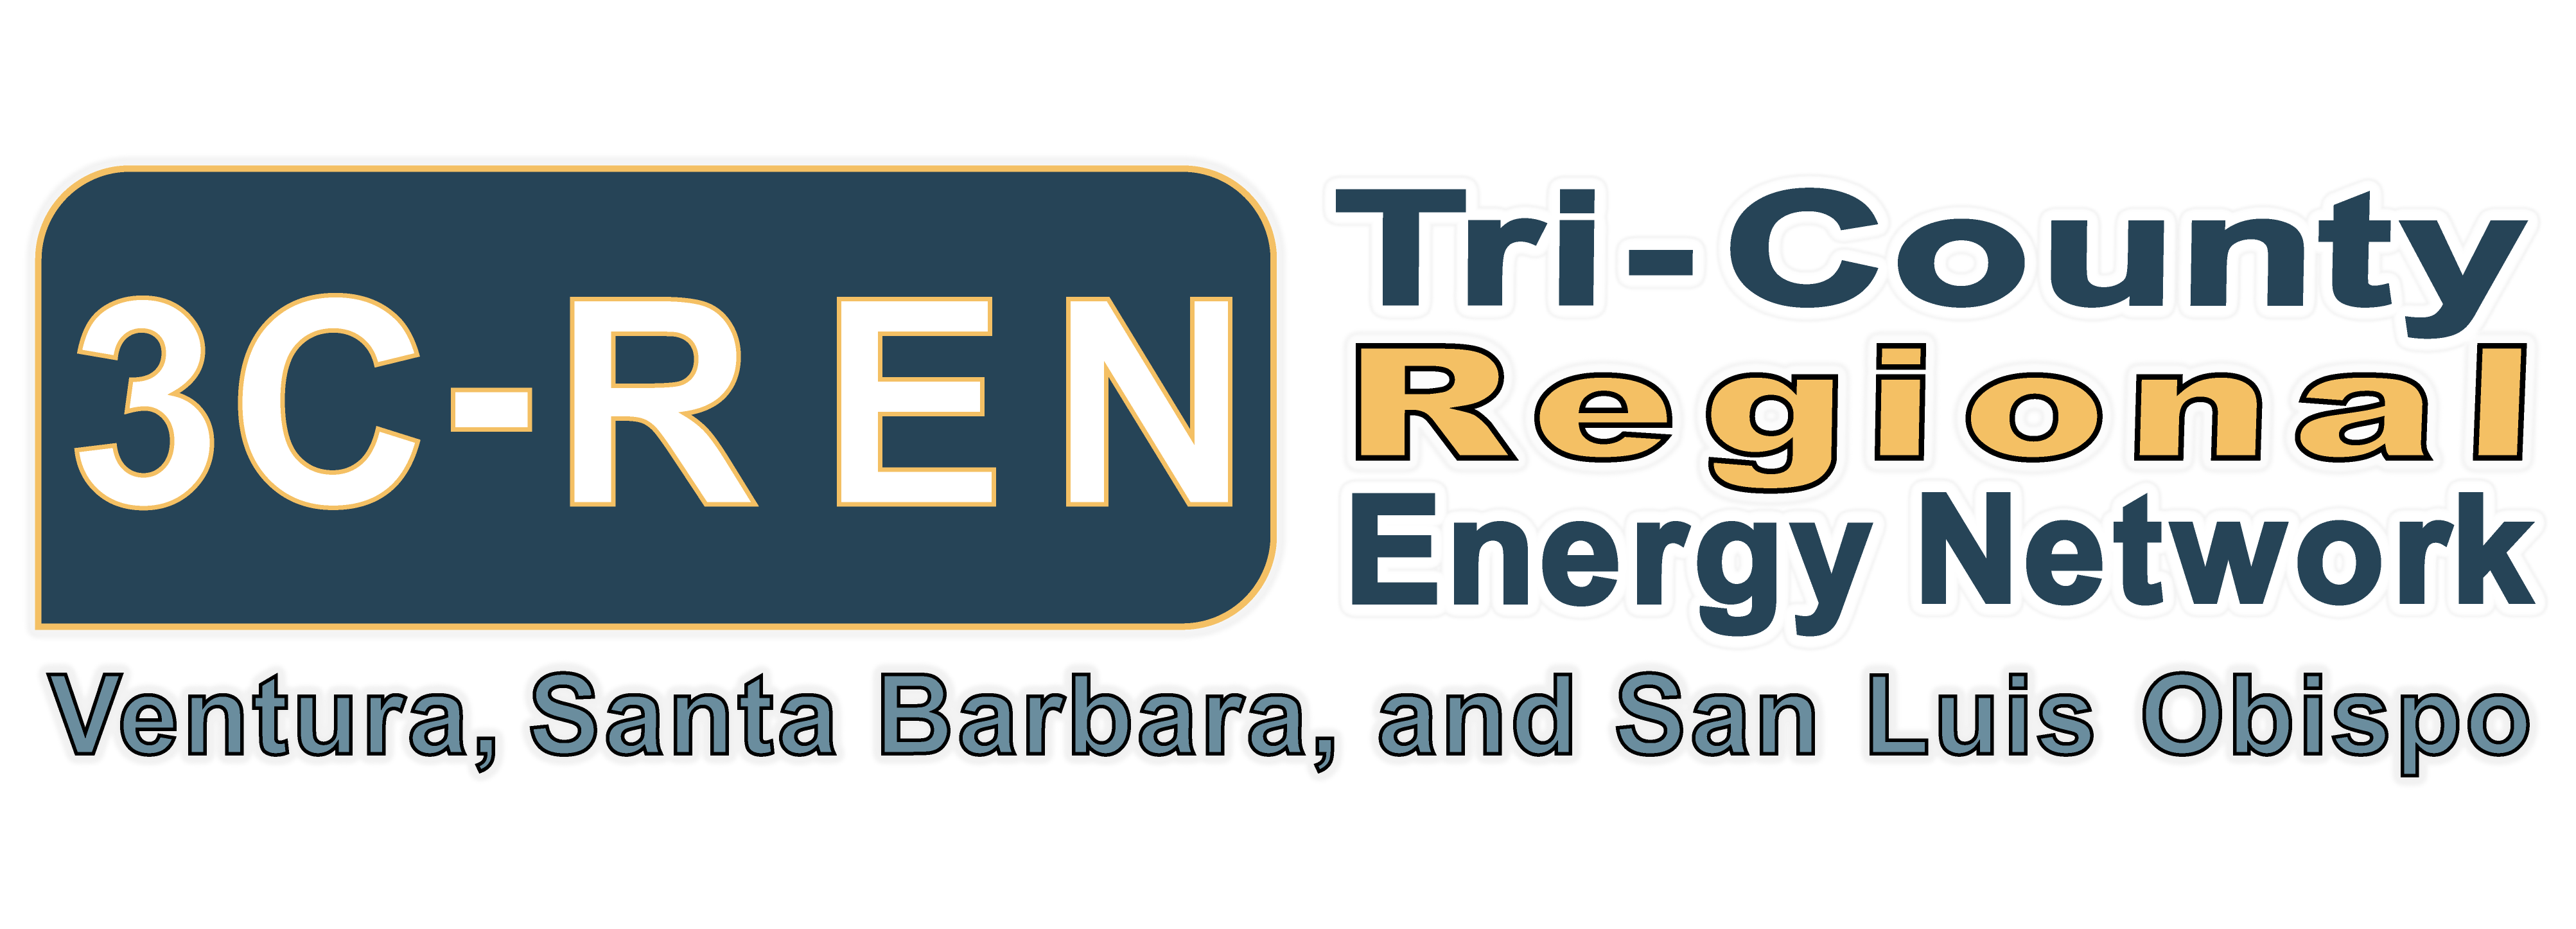 Tri County Regional Energy Network